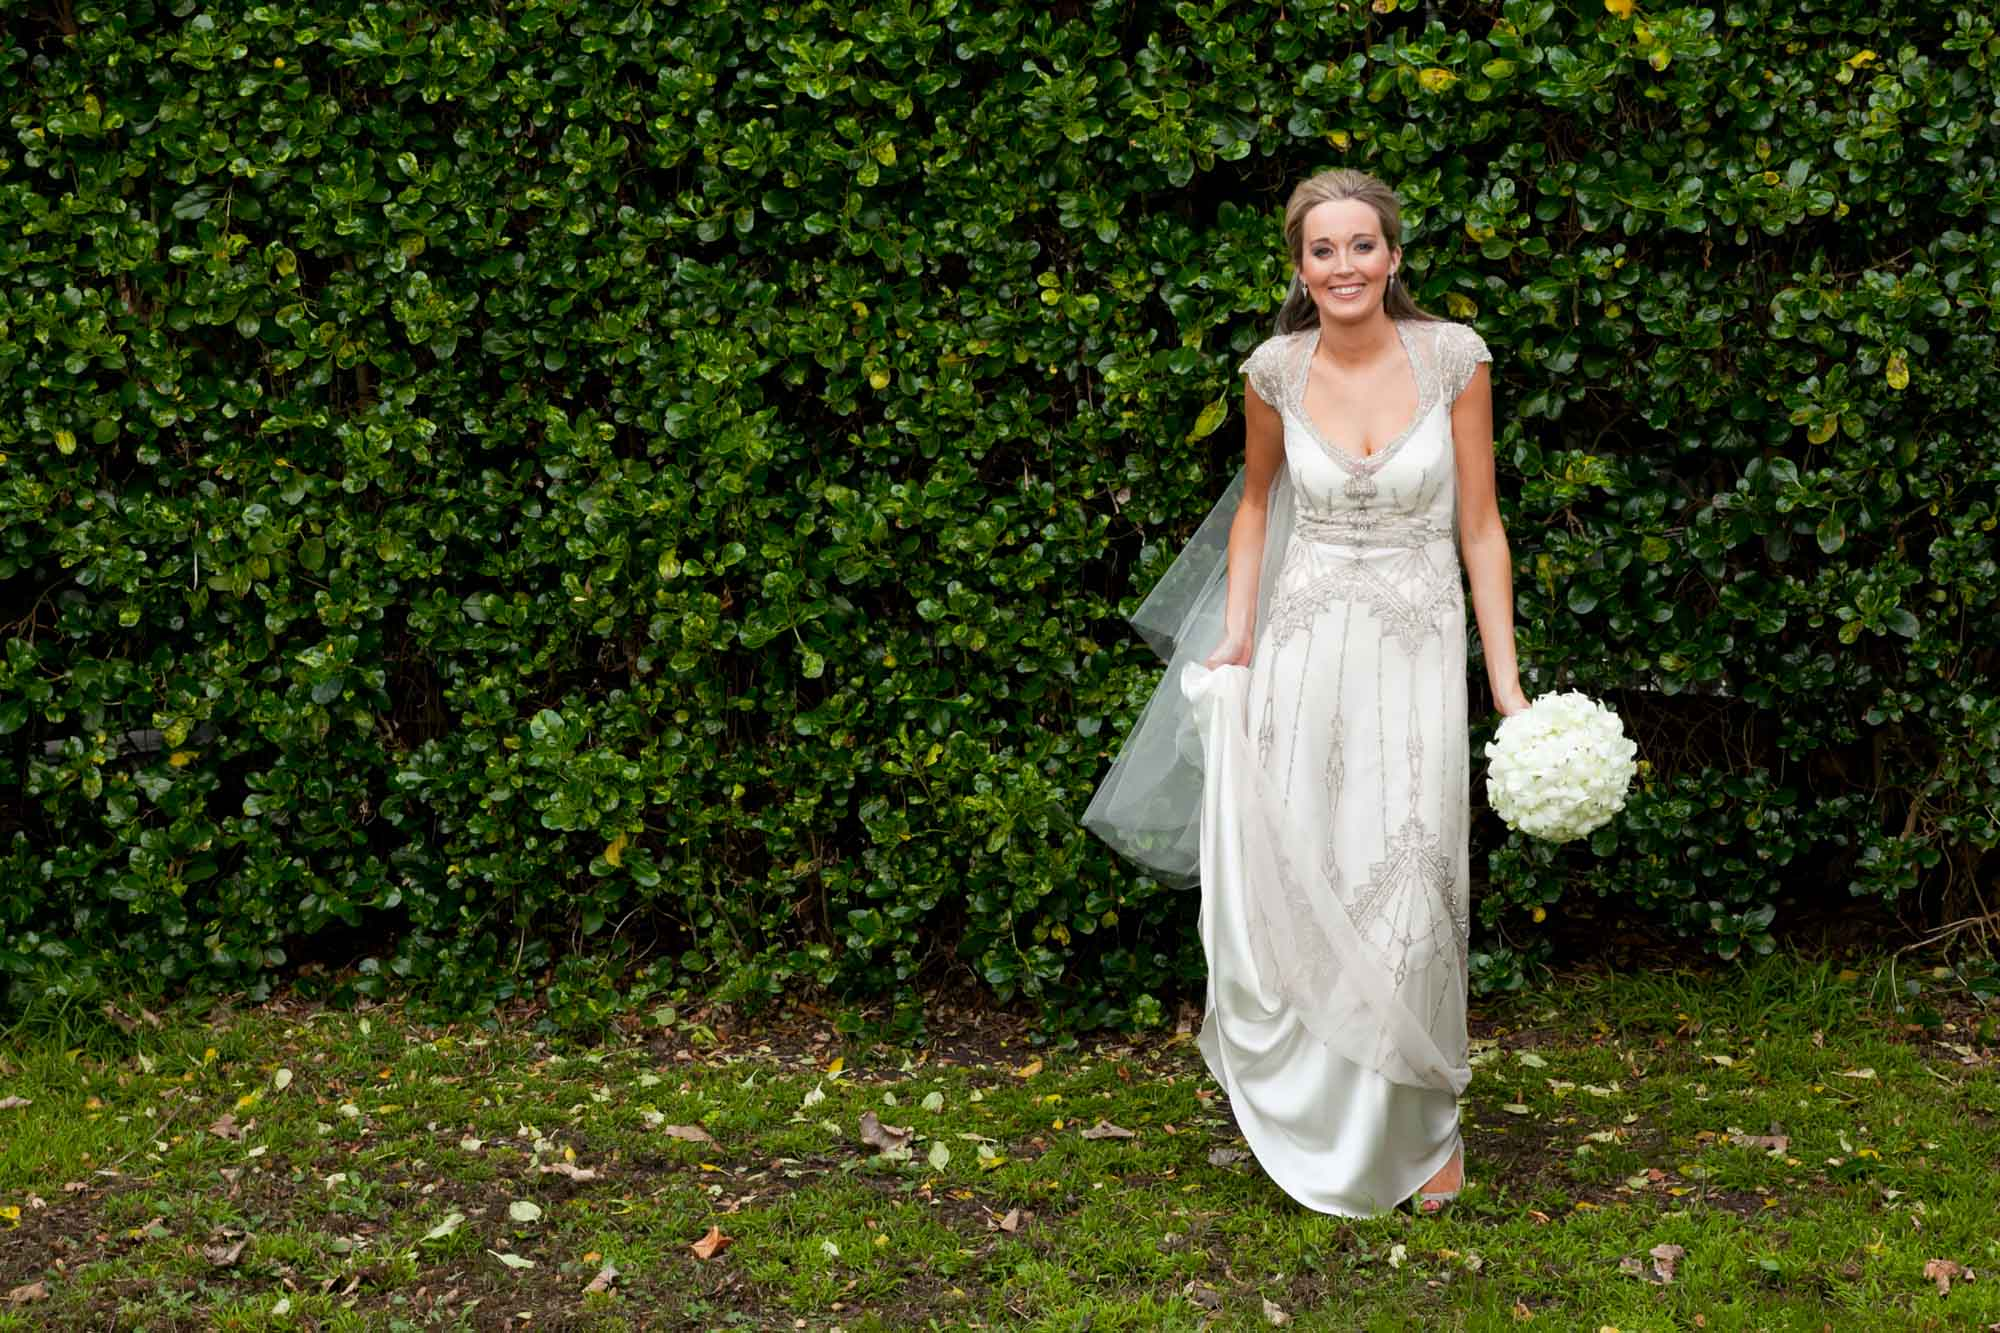 Gwendolynne_Sabine_Wedding_dress1.jpg